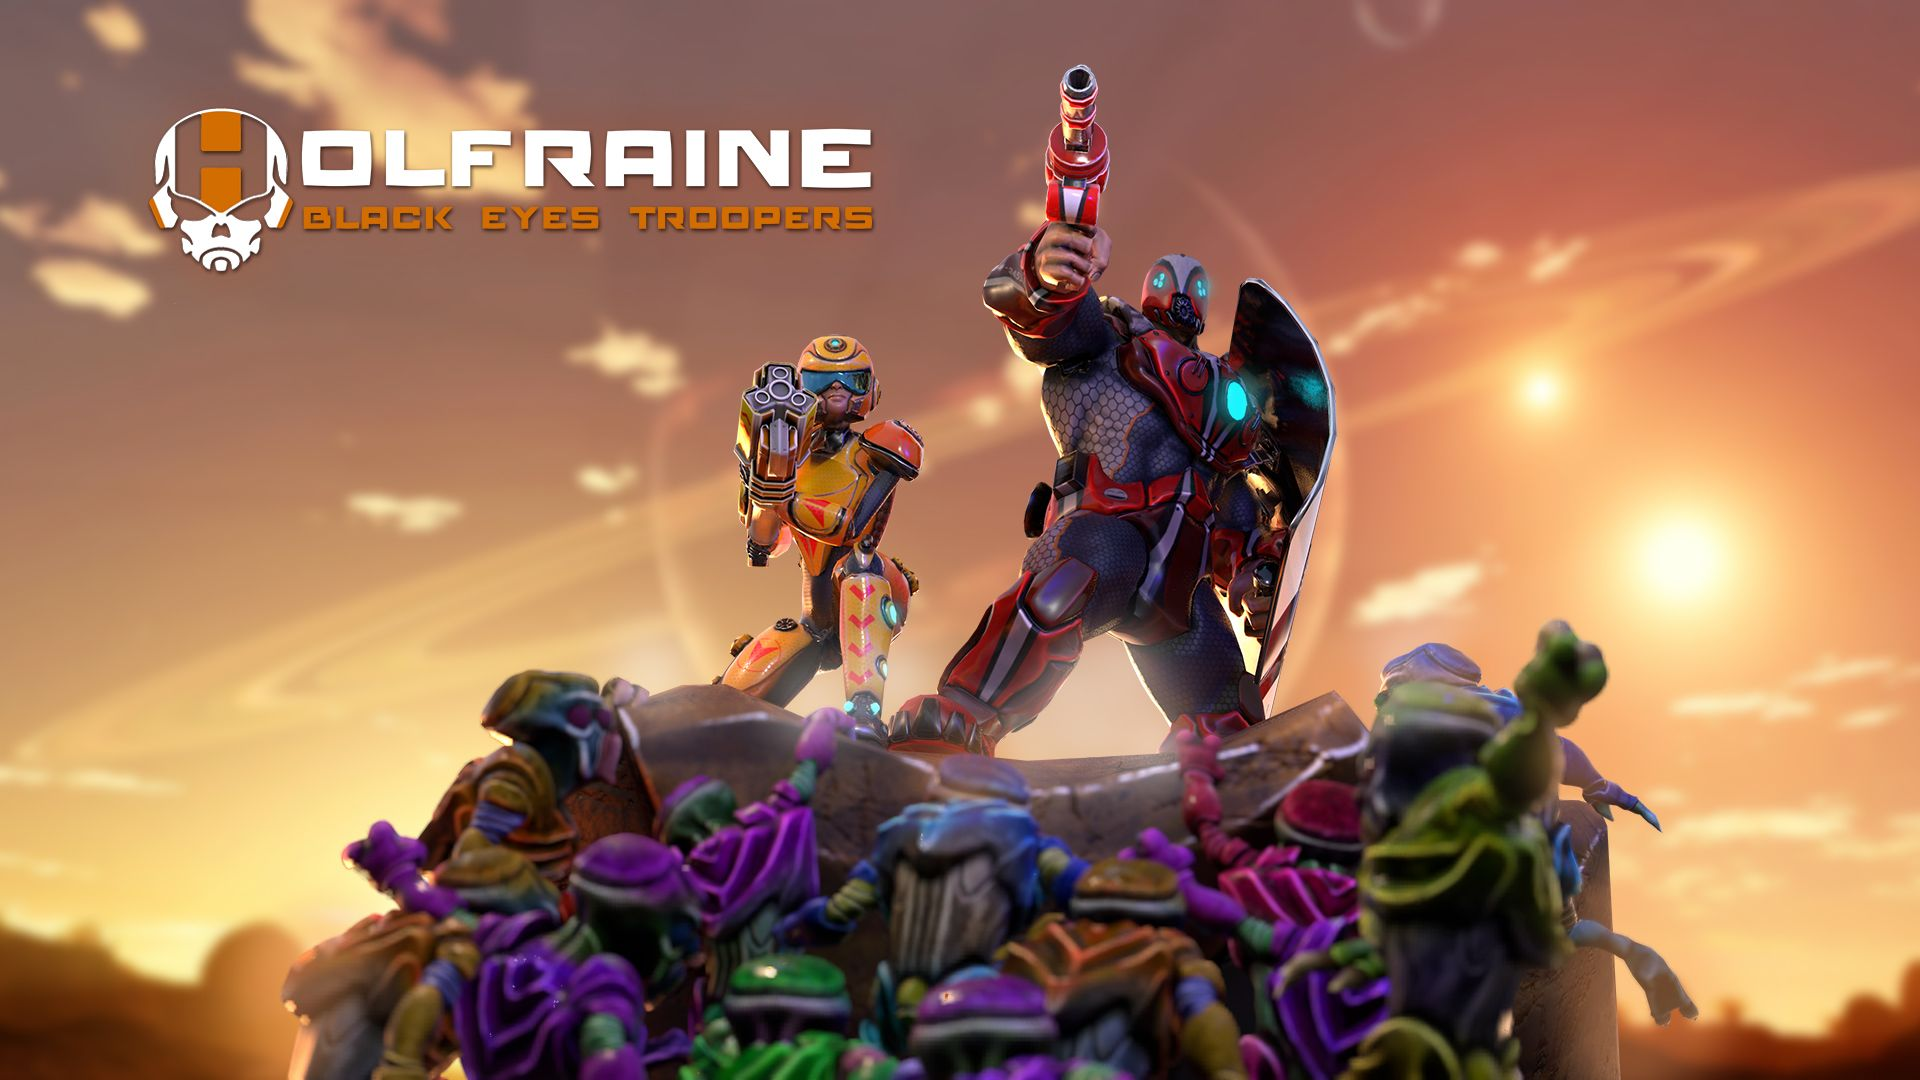 Holfraine Brings A Indie Hero Shooter Experience To PlayStation 4 Fans, Powerful Mercenaries Face Off In Frenetic PVP Battles